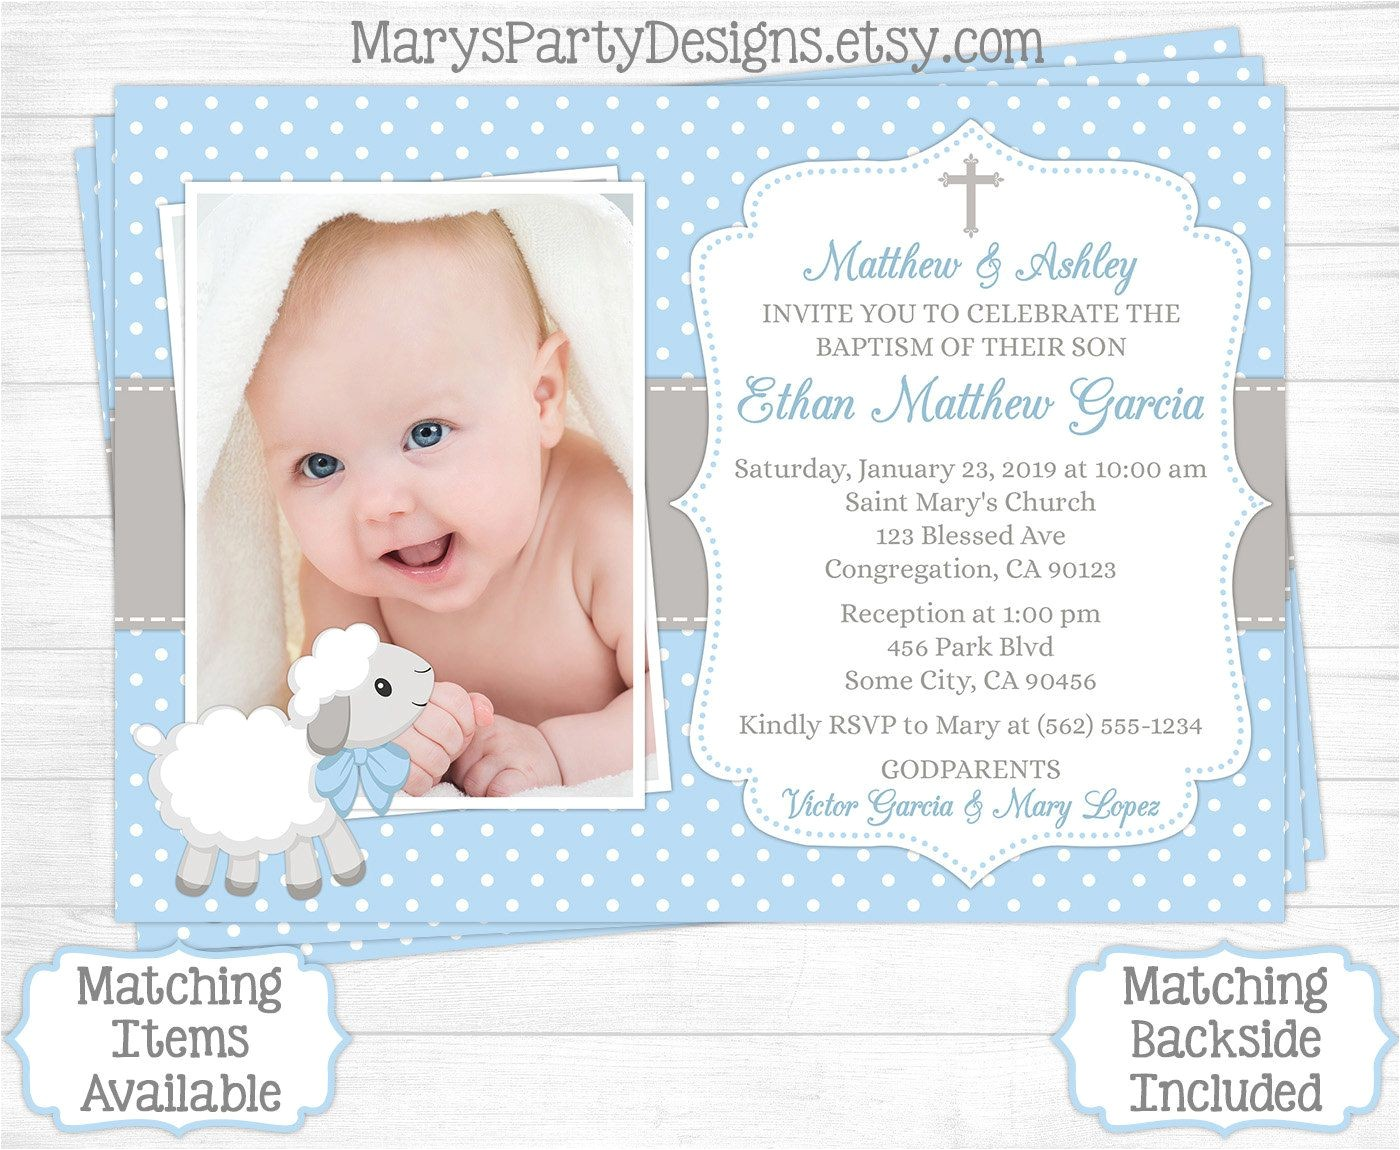 designs unique baby boy baptism invitations to her with baby